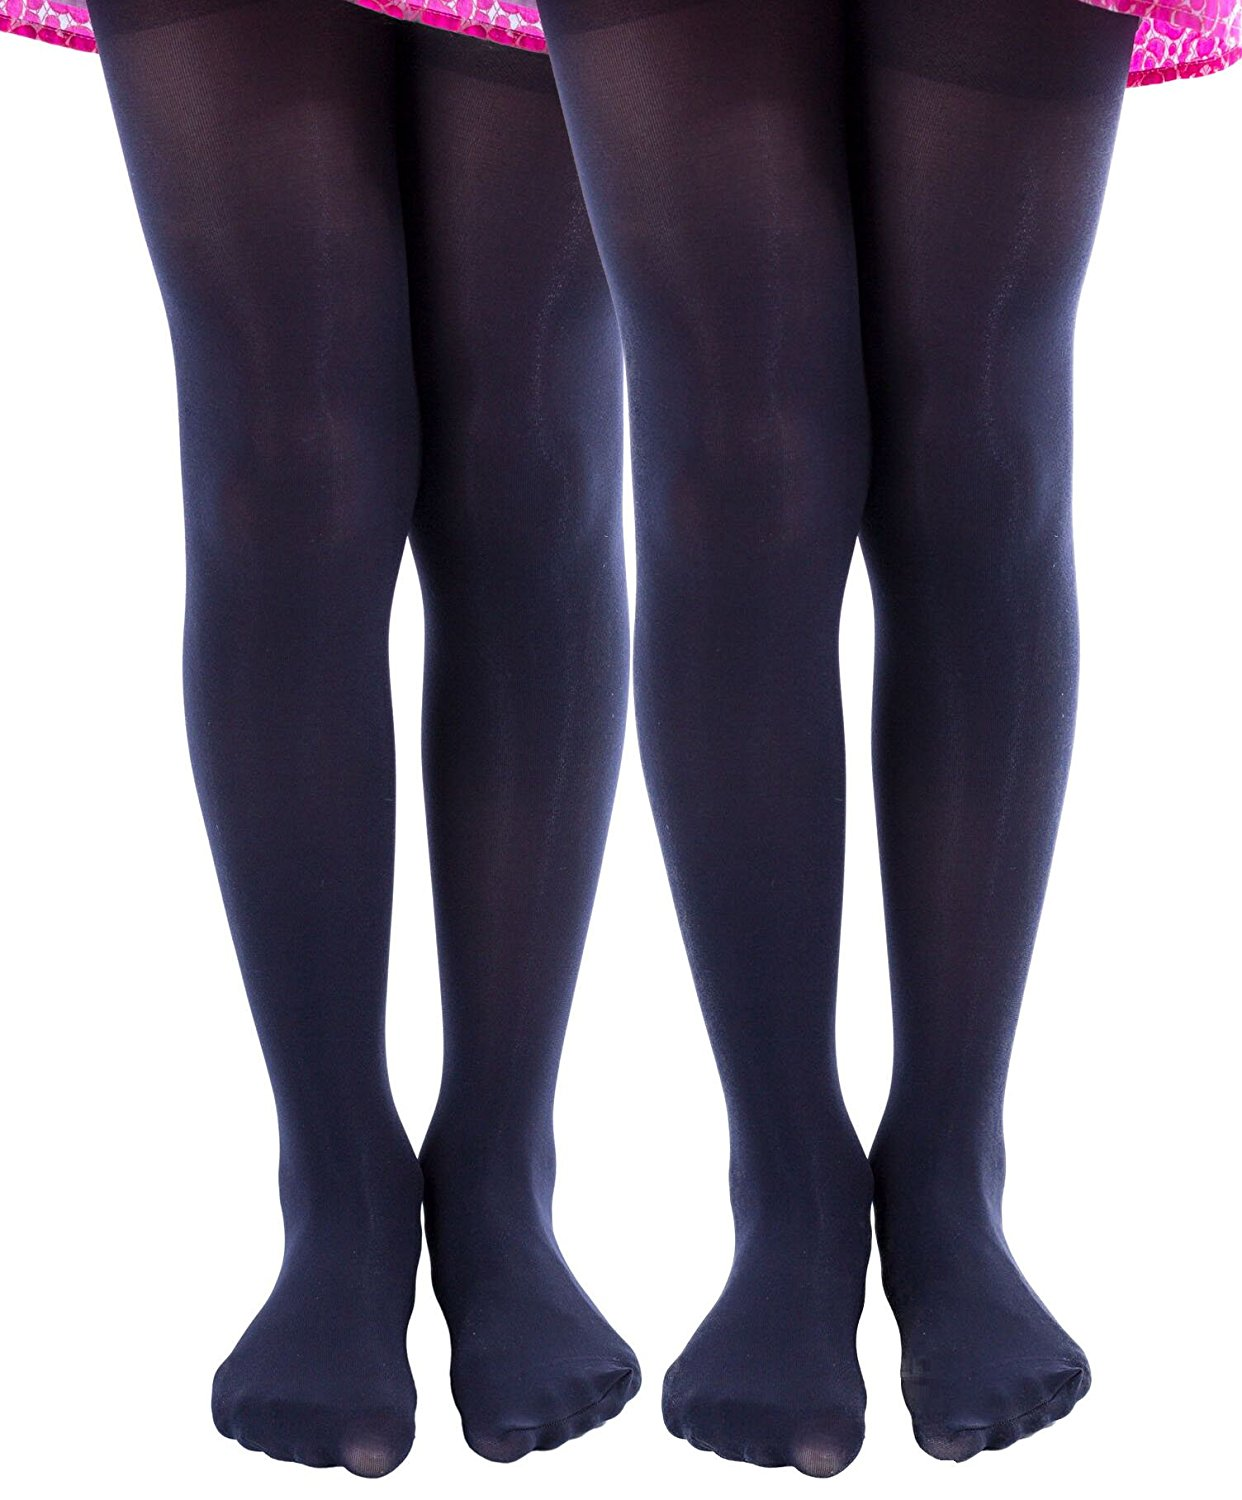 2 Pairs of Mod & Tone Girls Microfiber Opaque Tights (2-4, Black)